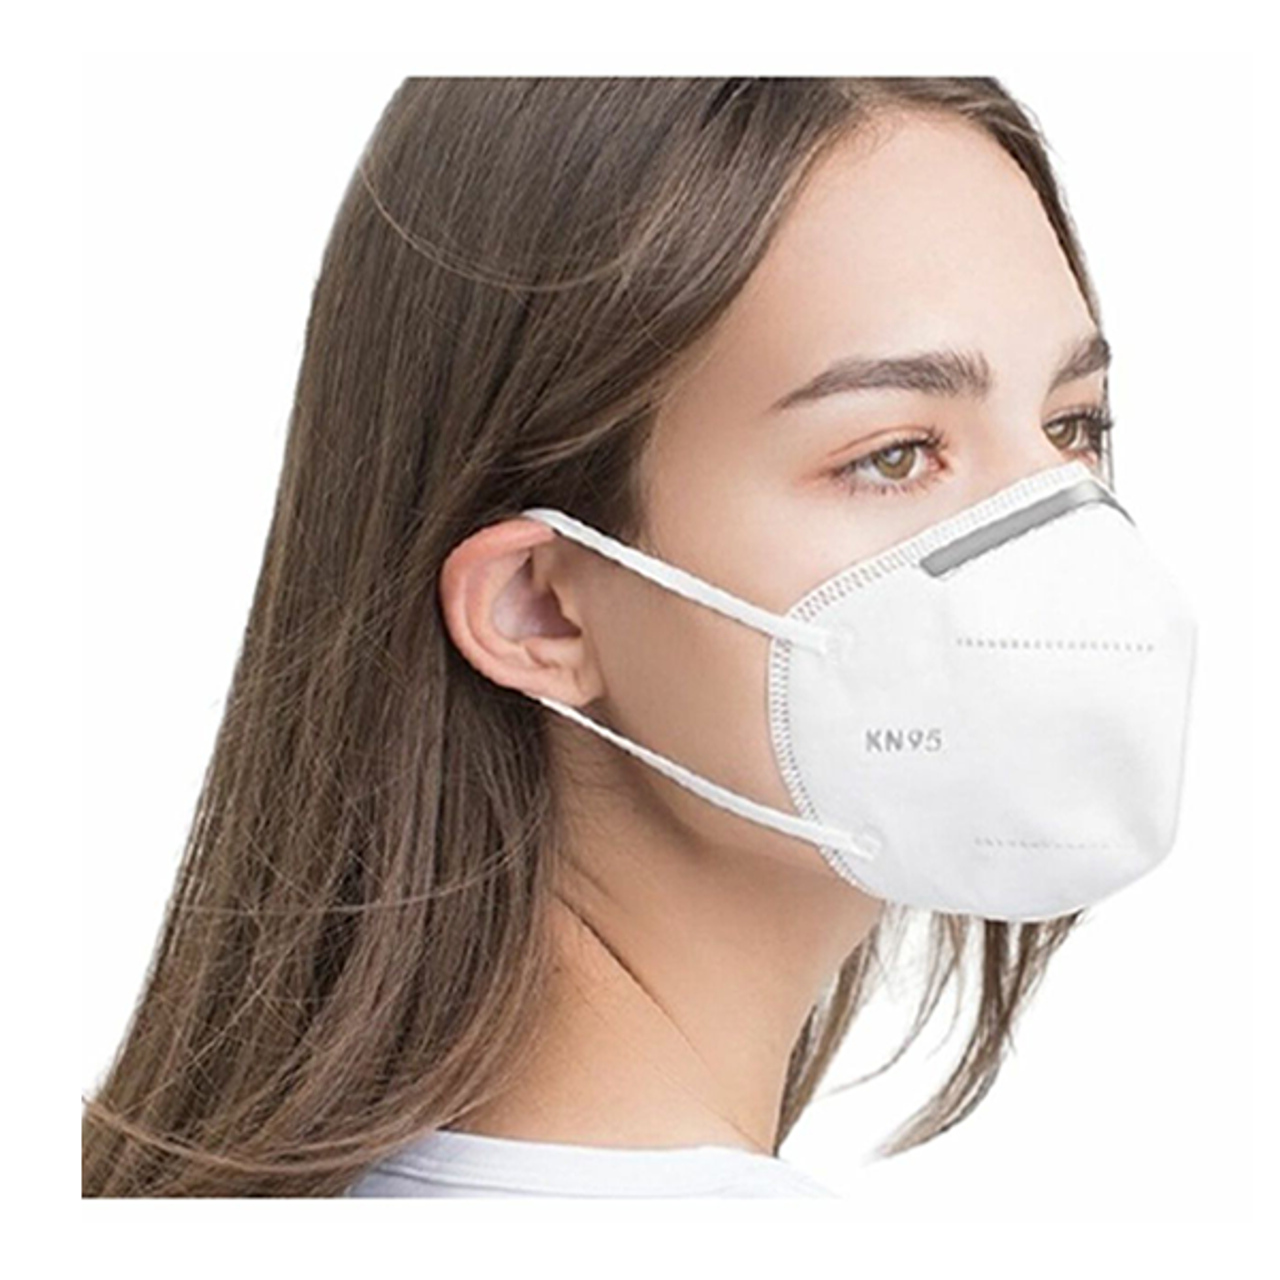 100-KN95 Disposable Protective Face Mask with 5-Ply Protection $14.99 (85% OFF)